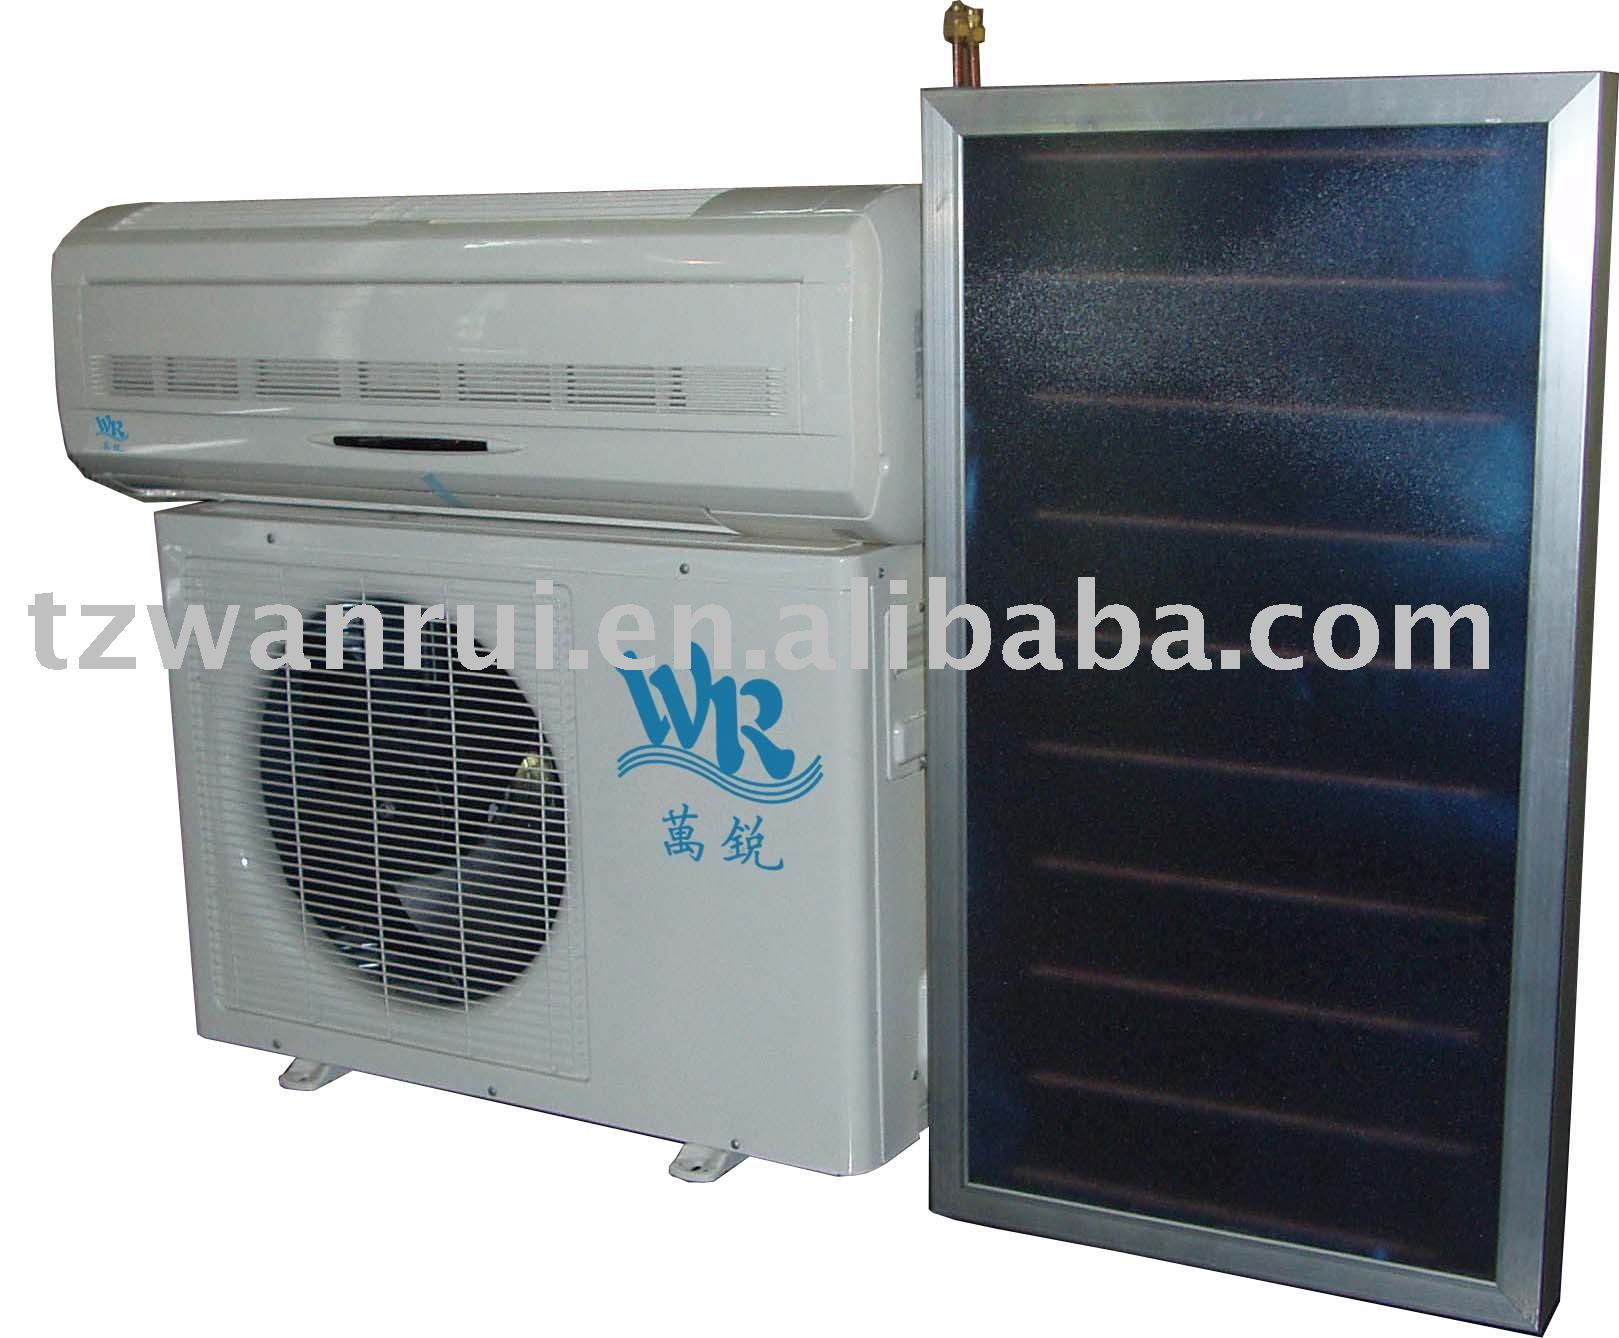 List Manufacturers of Solar Air Conditioning System, Buy Solar Air ...